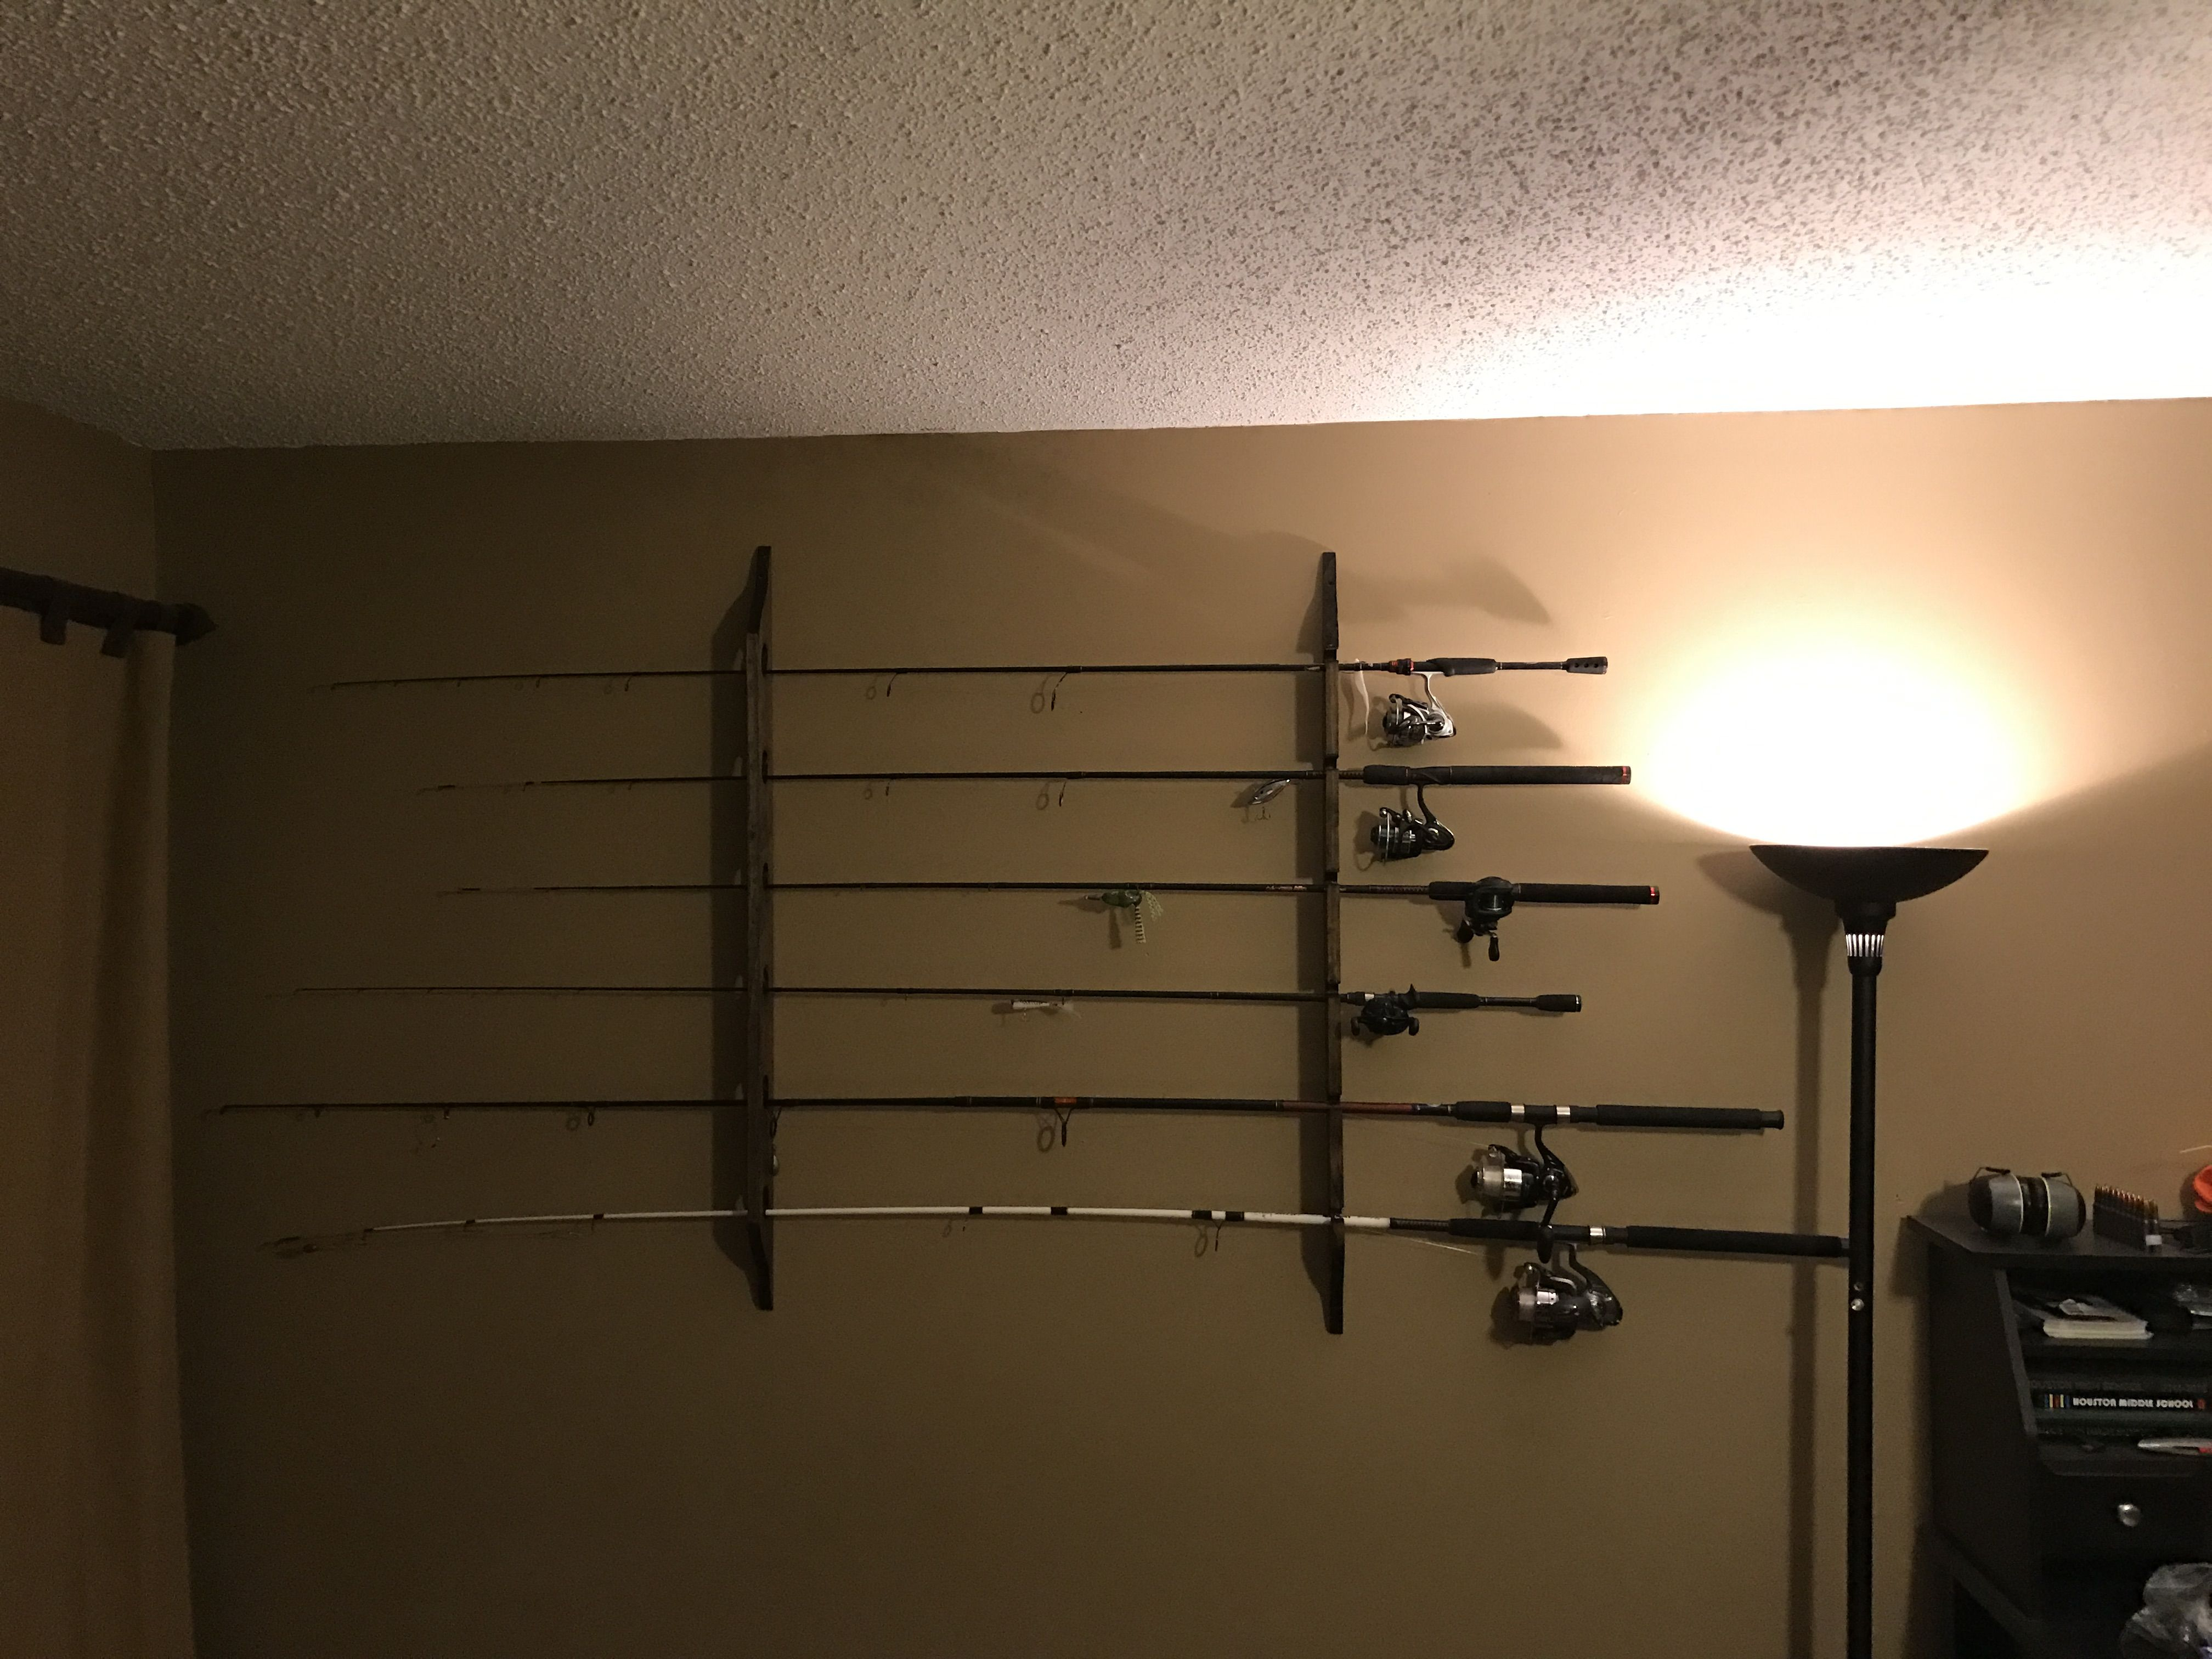 First Diy Hand Made Wall Mounted Horizontal Fishing Rod Holders Handmade Crafts Howto Diy Diy Holder Fishing Pole Holder Diy Diy